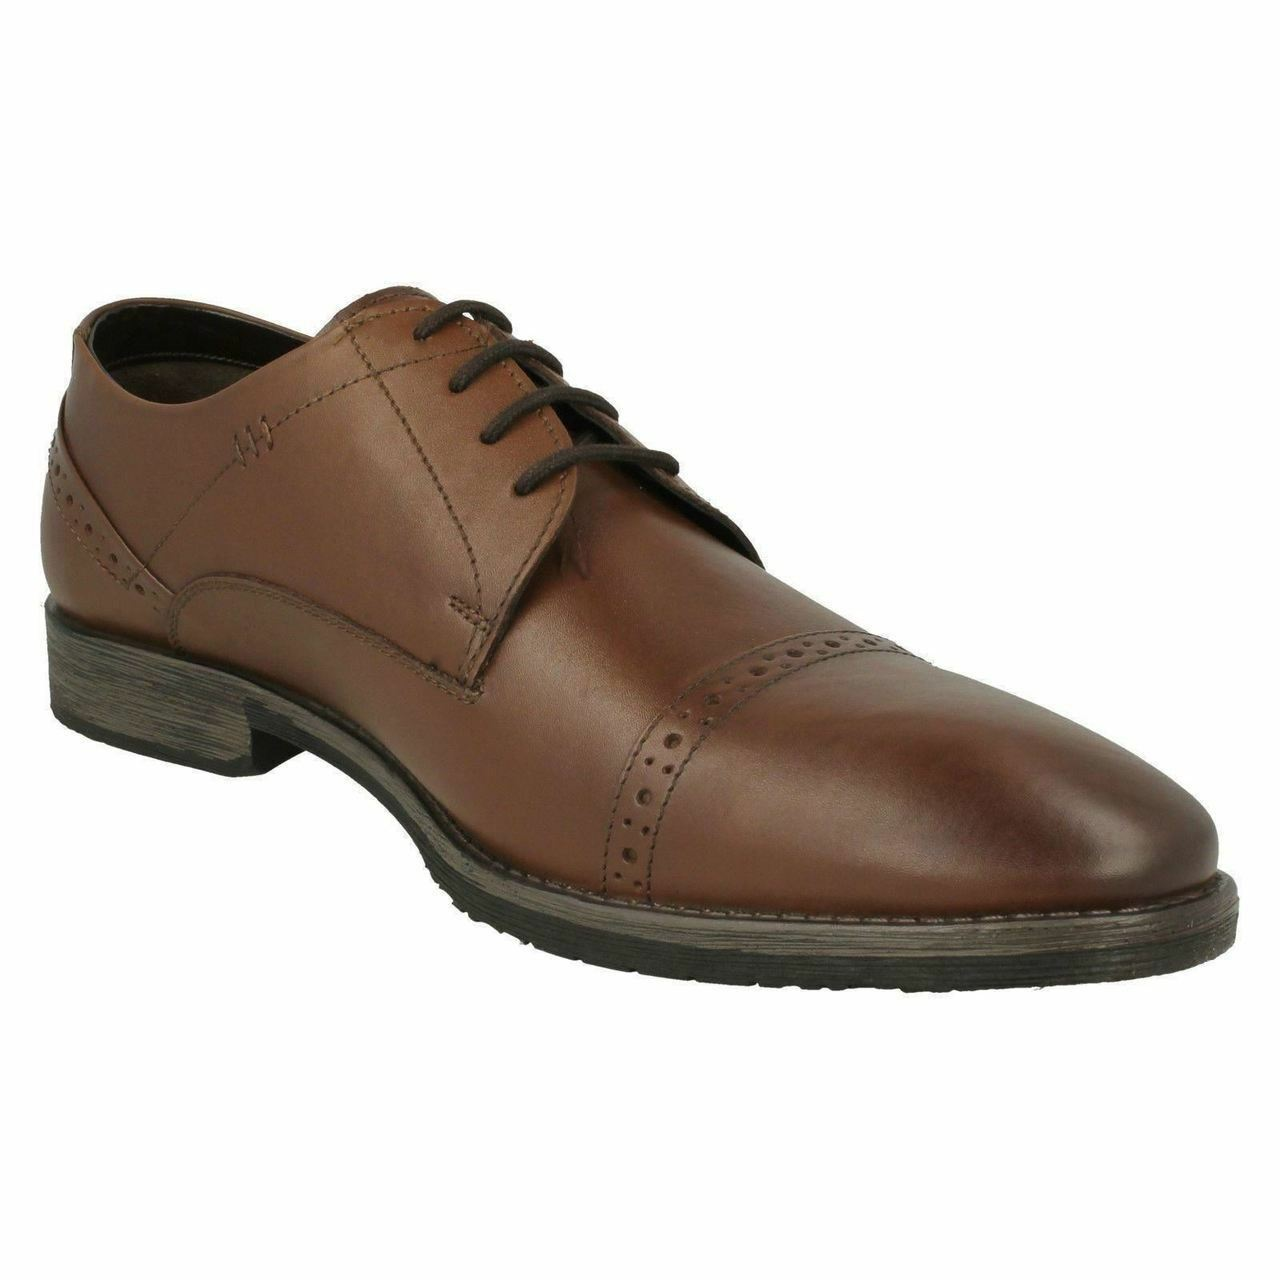 Mens Hush Puppies Smart Lace Up shoes 'Craig Luganda' Brown Size